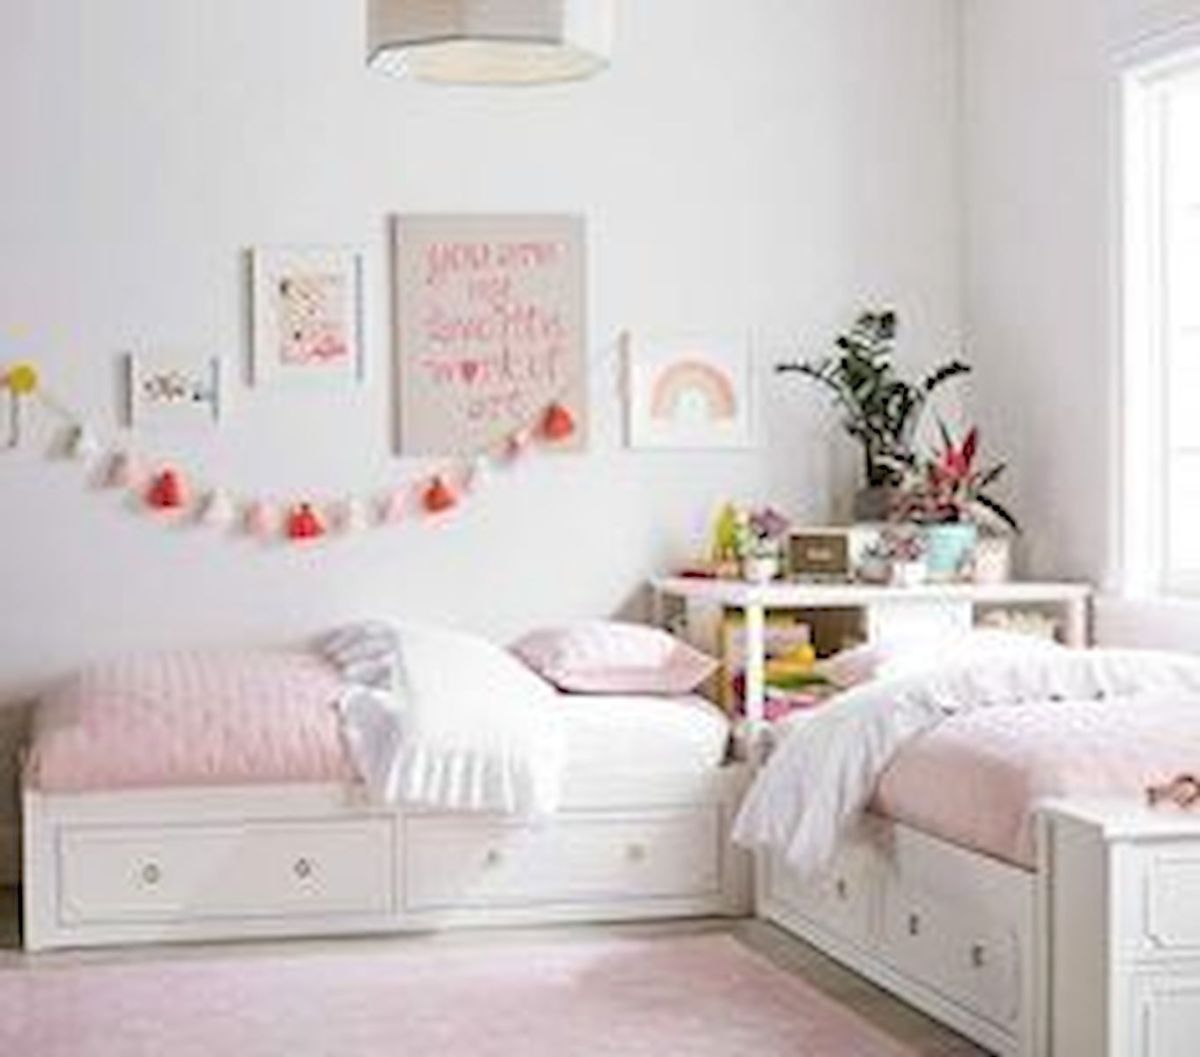 60 Cute DIY Bedroom Design and Decor Ideas for Kids (56)